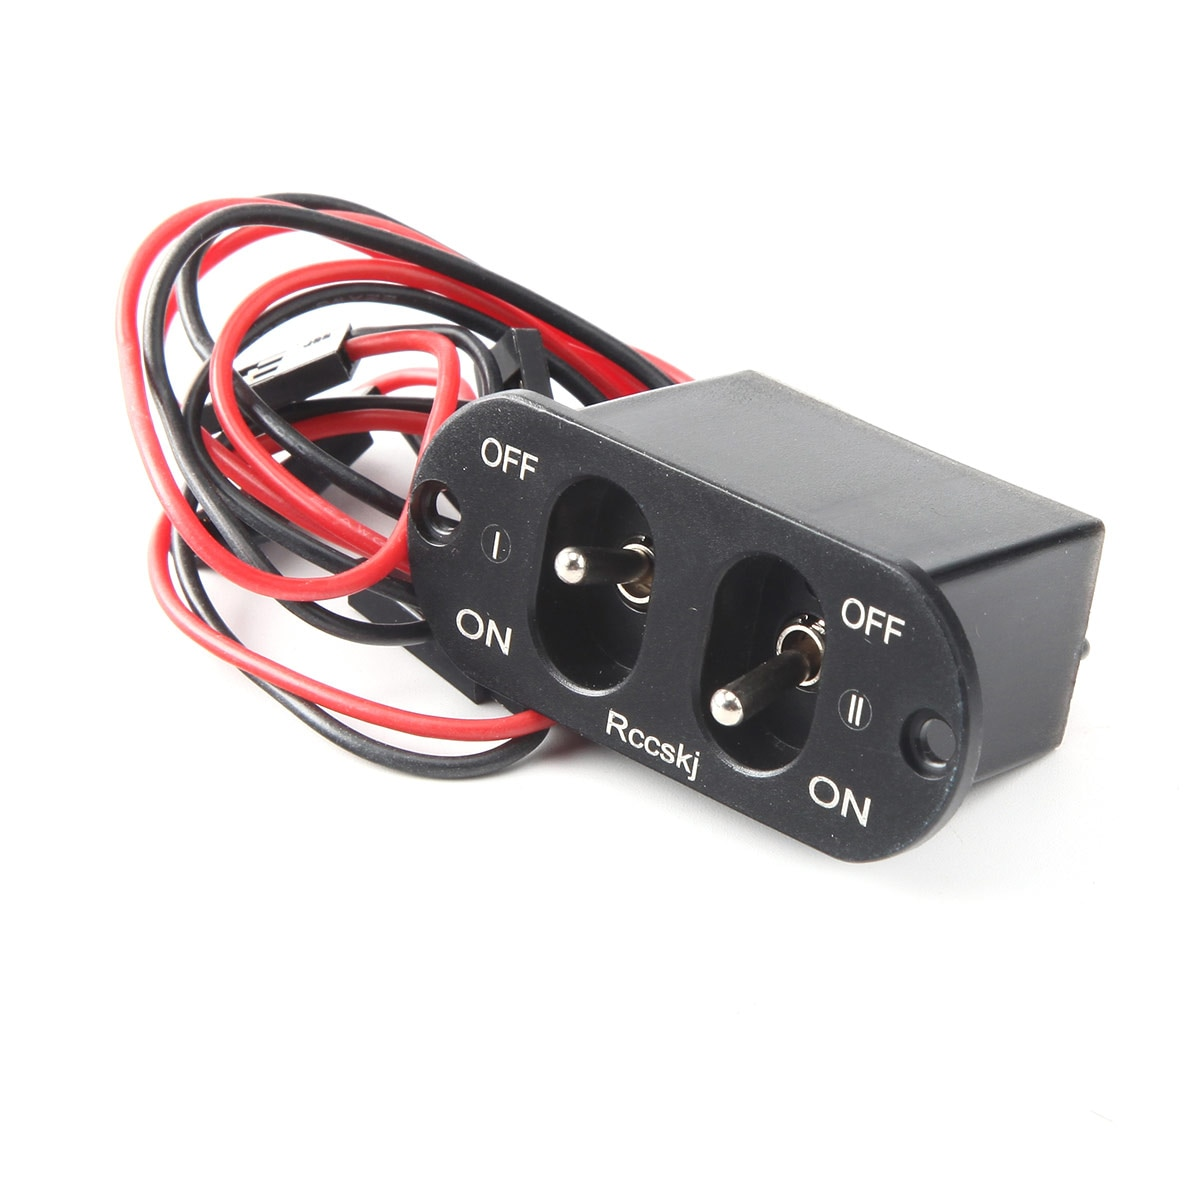 Rccskj RC Airplane Car Heavy Current Dual Charging Switch Fit FUTABA/ JR connector enlarge